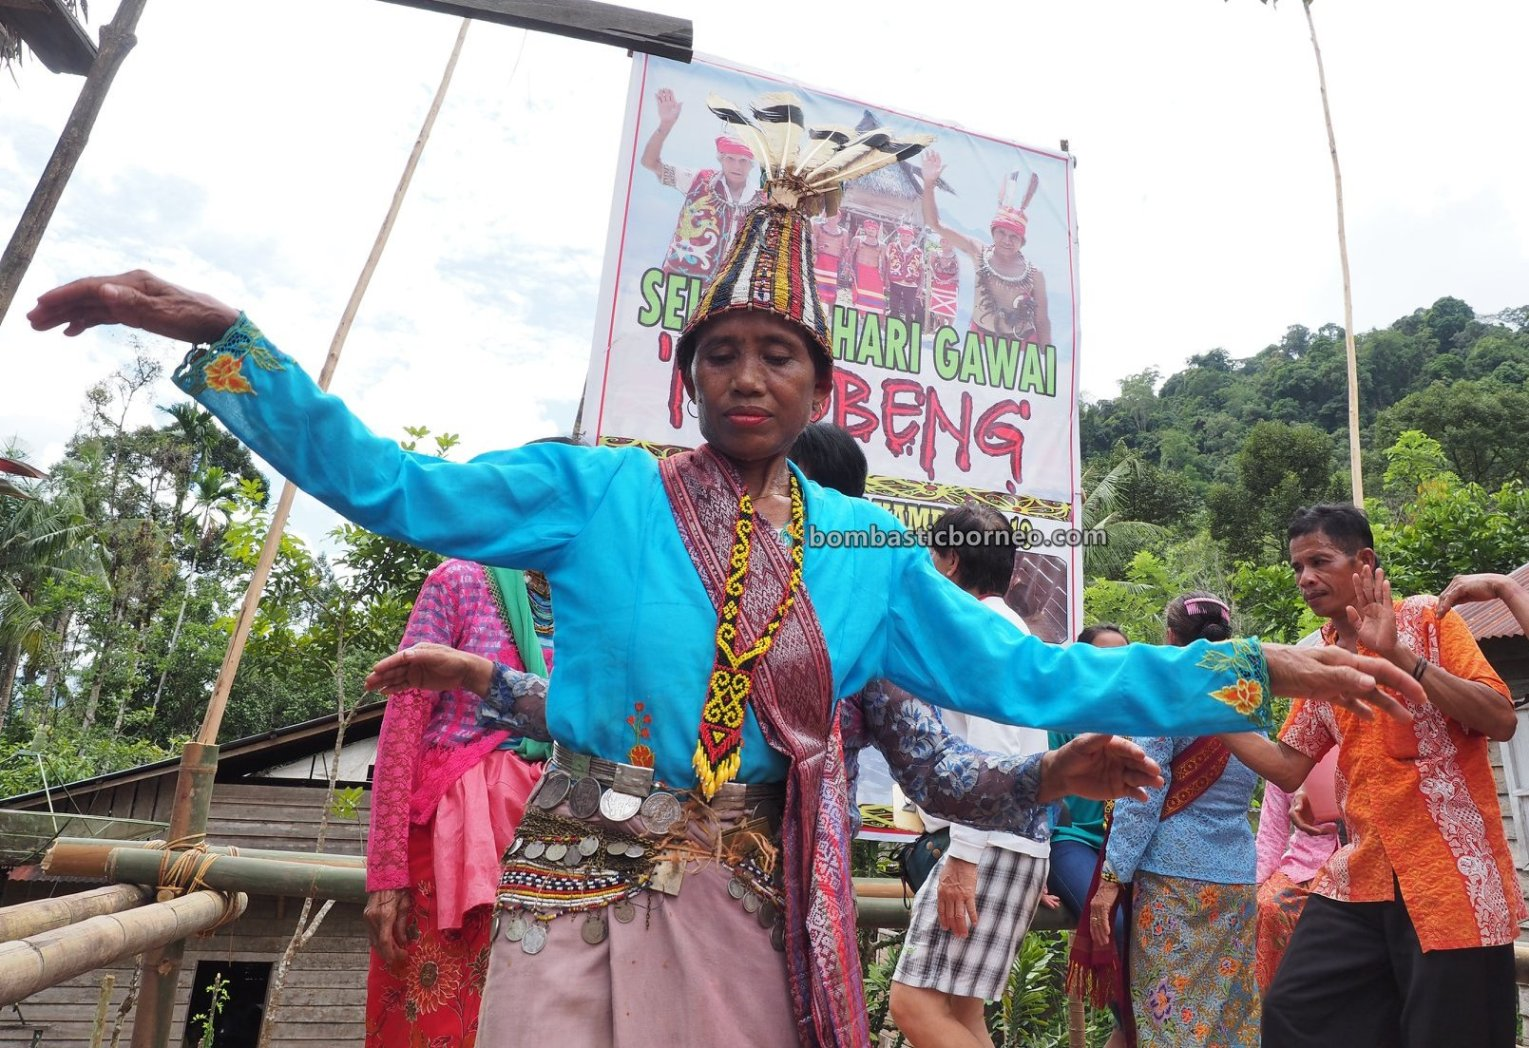 Nyobeng Kambih, Gawai Harvest Festival, traditional, backpackers, event, Desa Bengkawan, Dayak Kowon't, Ethnic, indigenous, tribe, Tourism, Travel guide, Trans Borneo, 婆羅洲达雅传统文化, 印尼西加里曼丹, 孟加映比达友丰收节